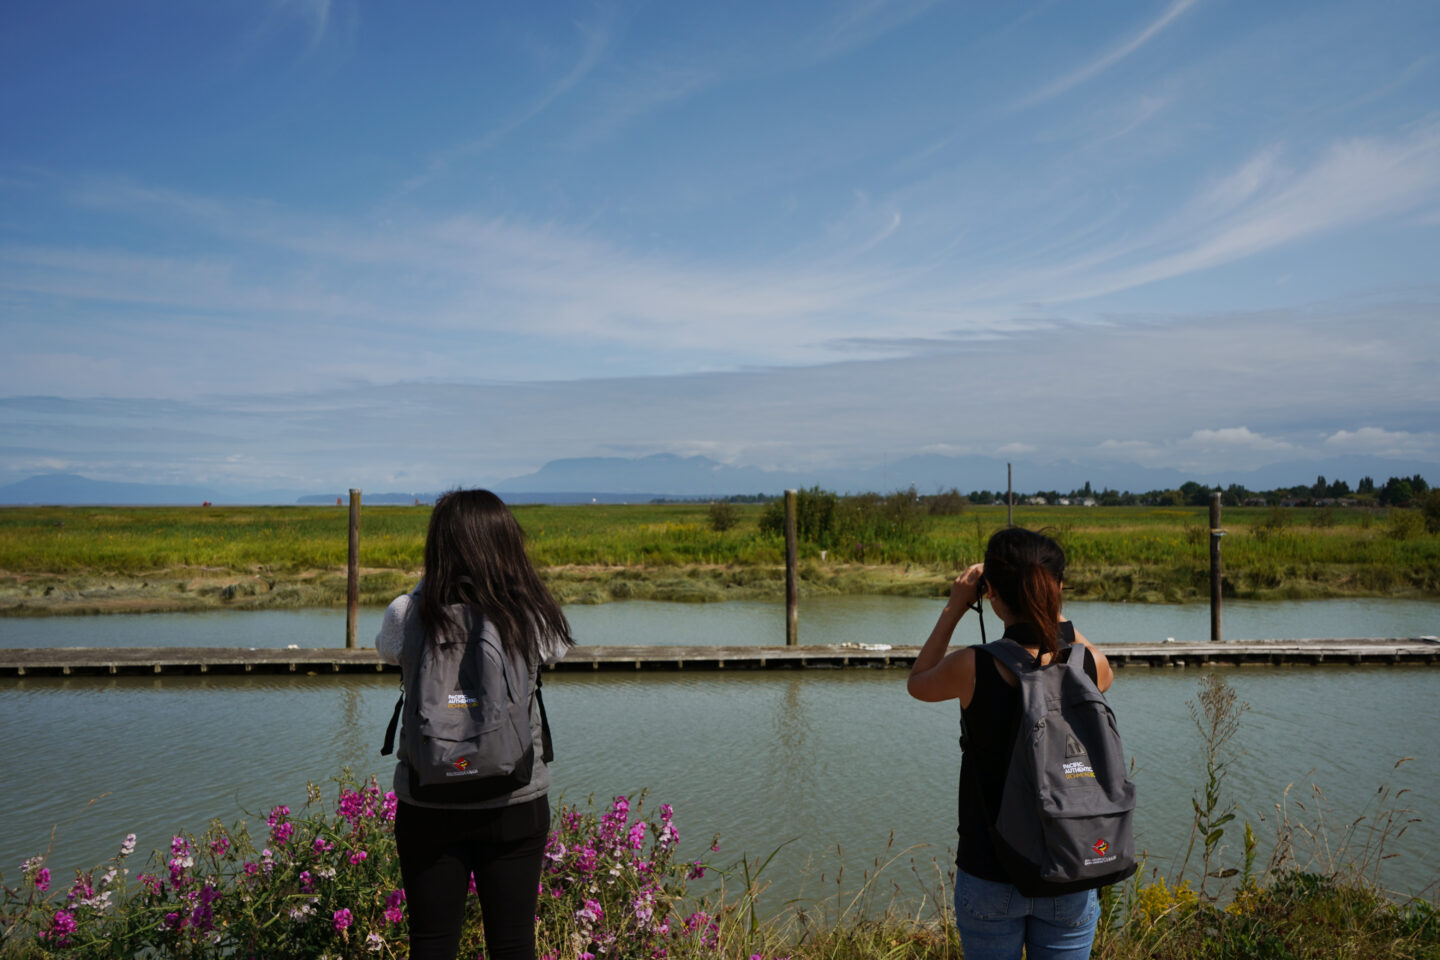 Two young birders looking out over the water with binoculars at Gary Point Park.